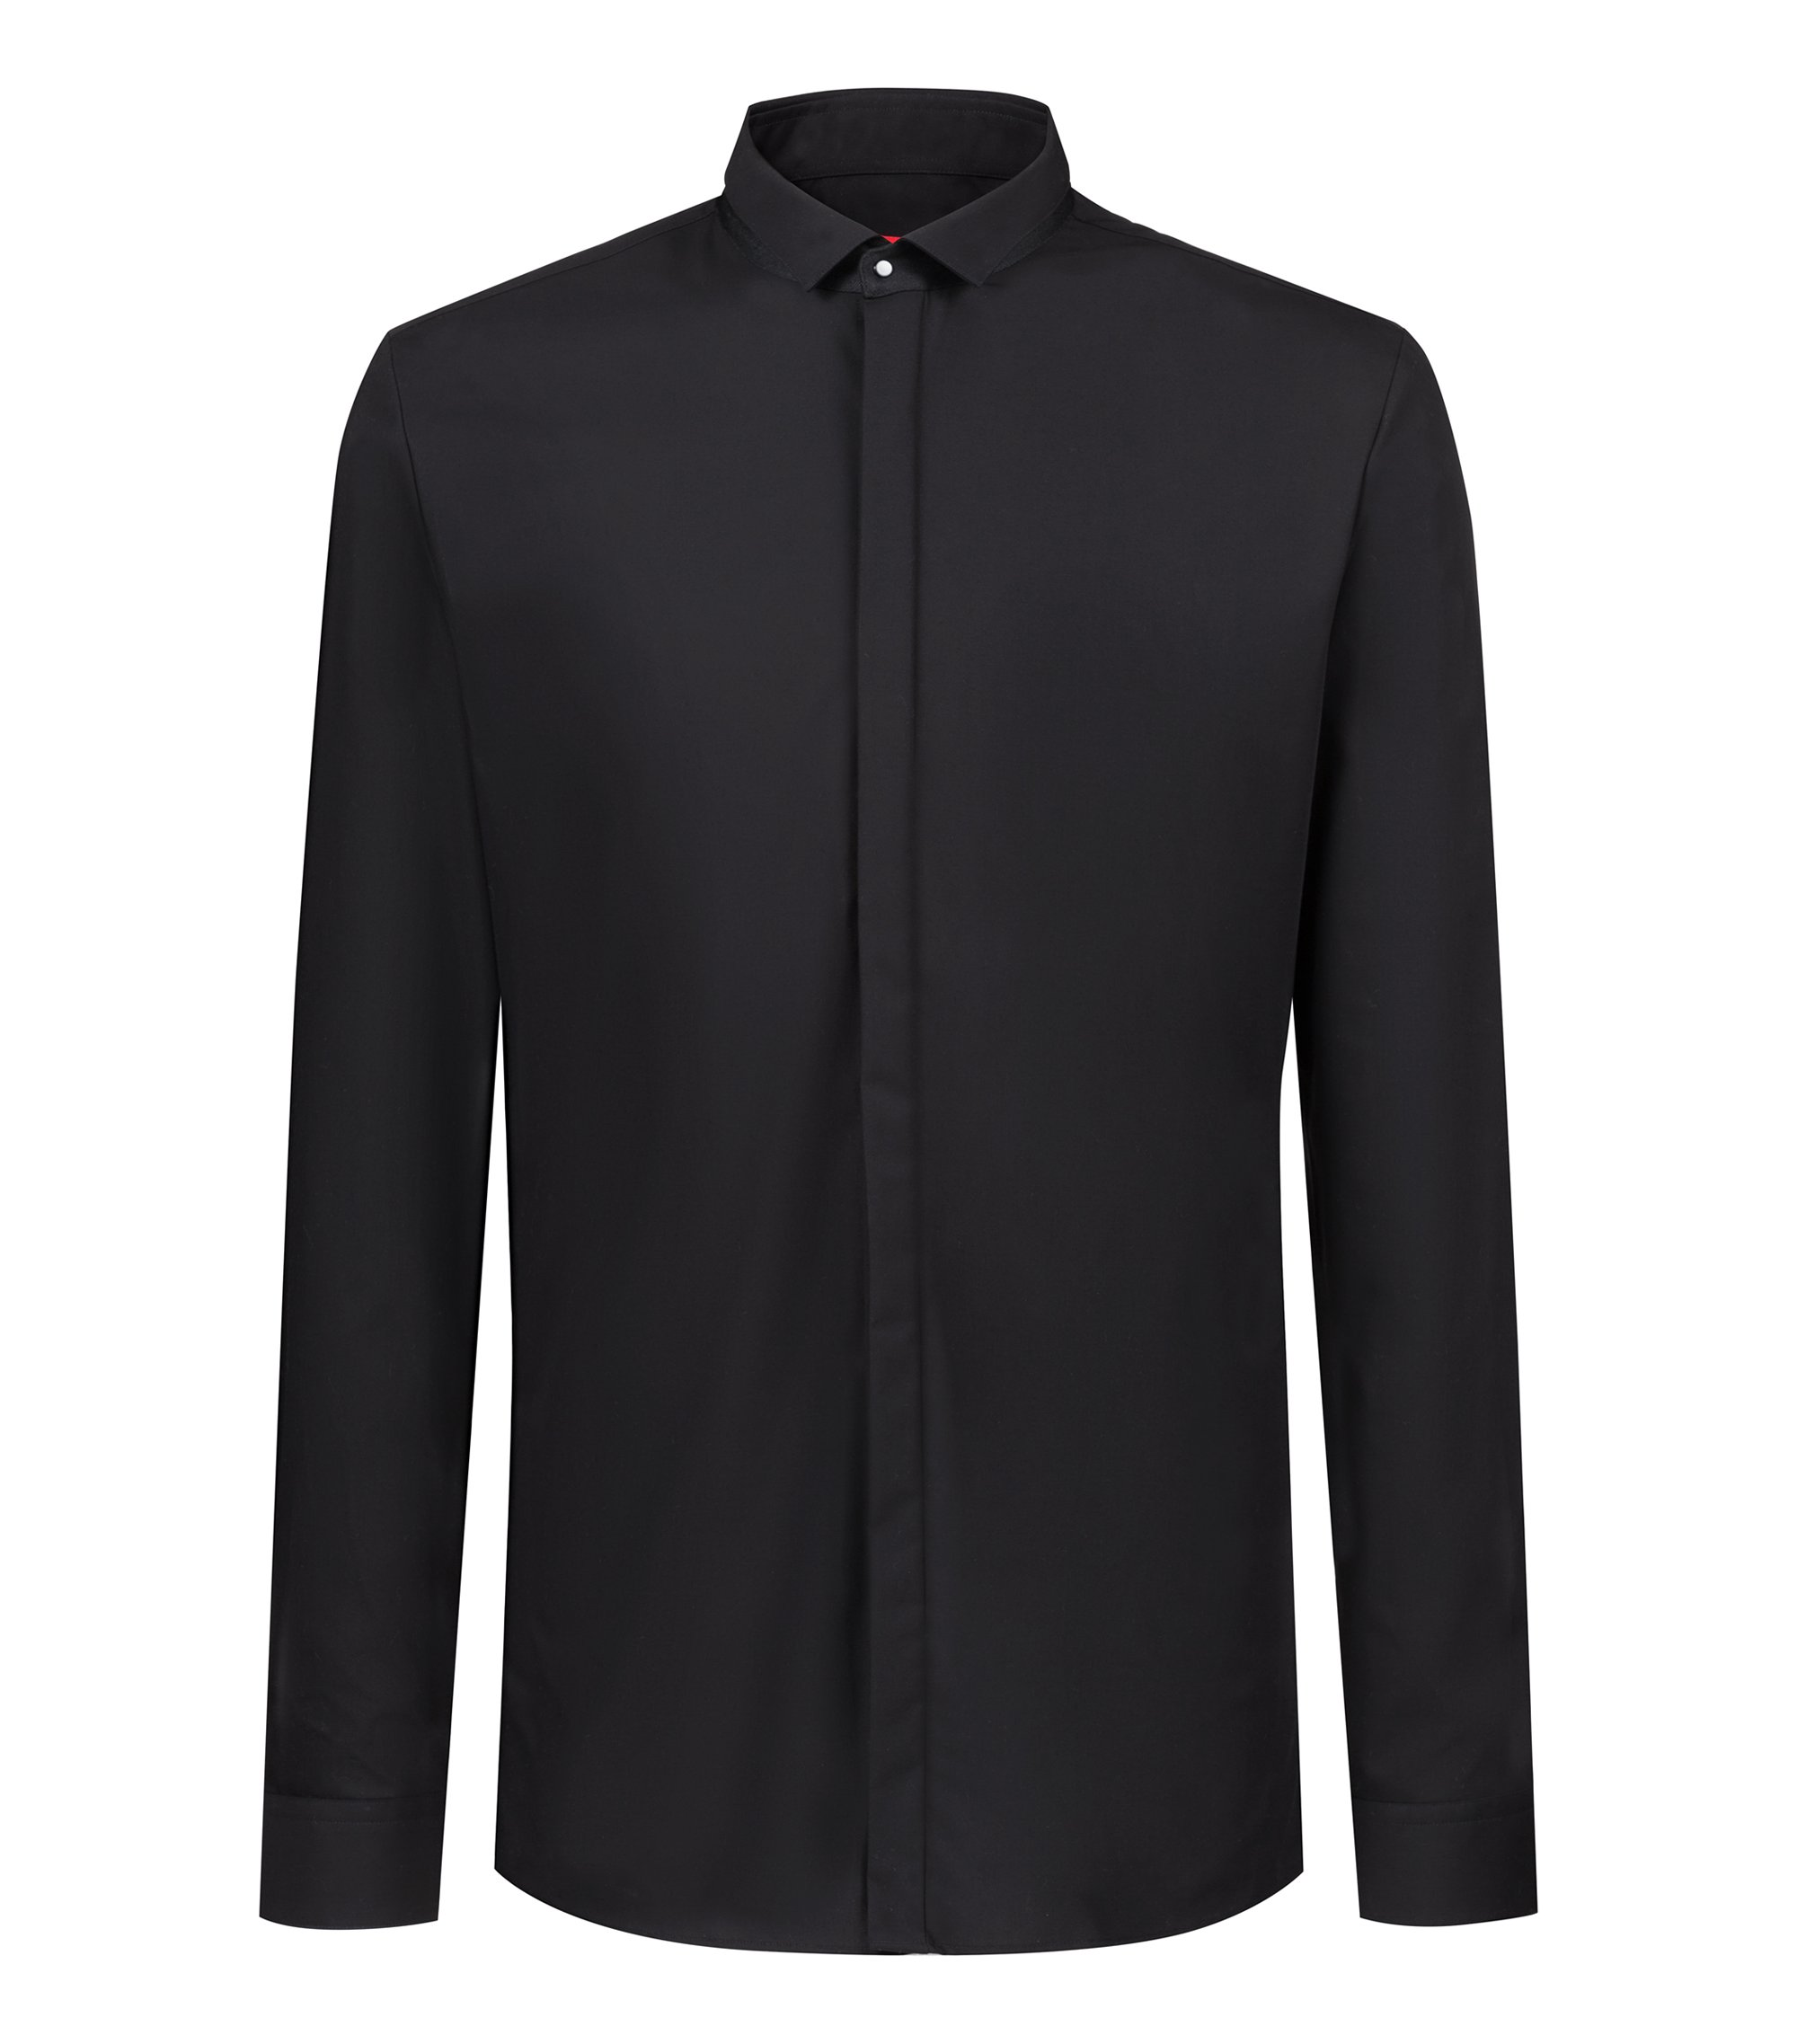 Extra-slim-fit shirt in cotton with contrast collar stand, Black